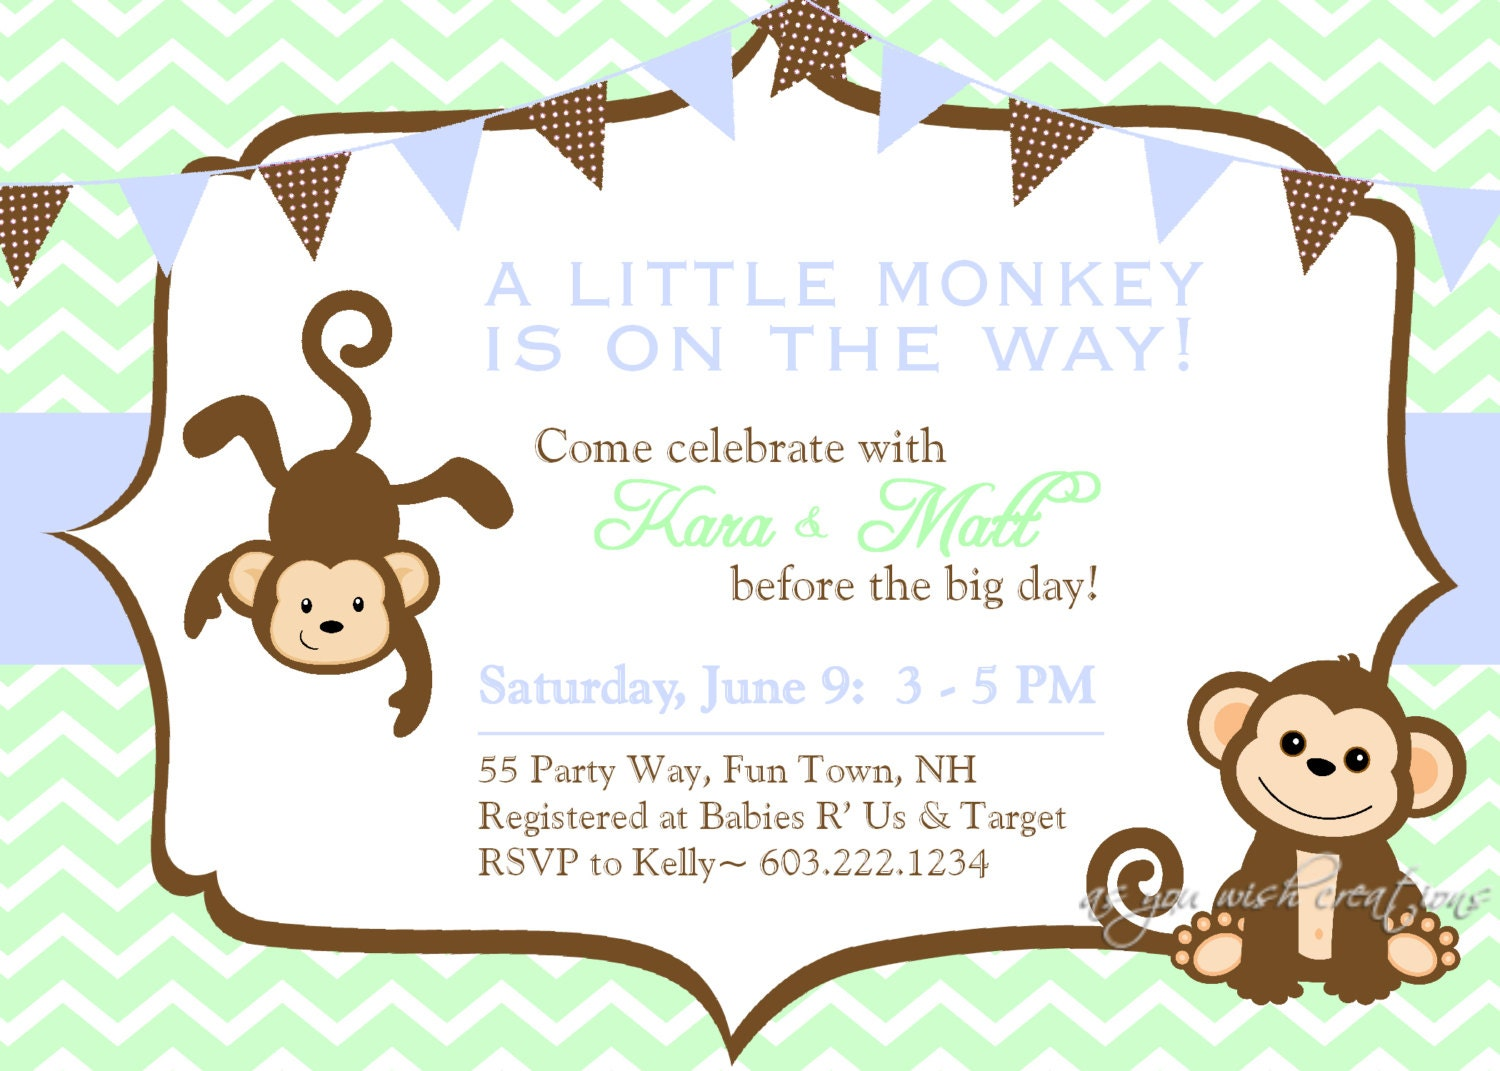 Baby Shower Invitations Jungle Theme as beautiful invitations template